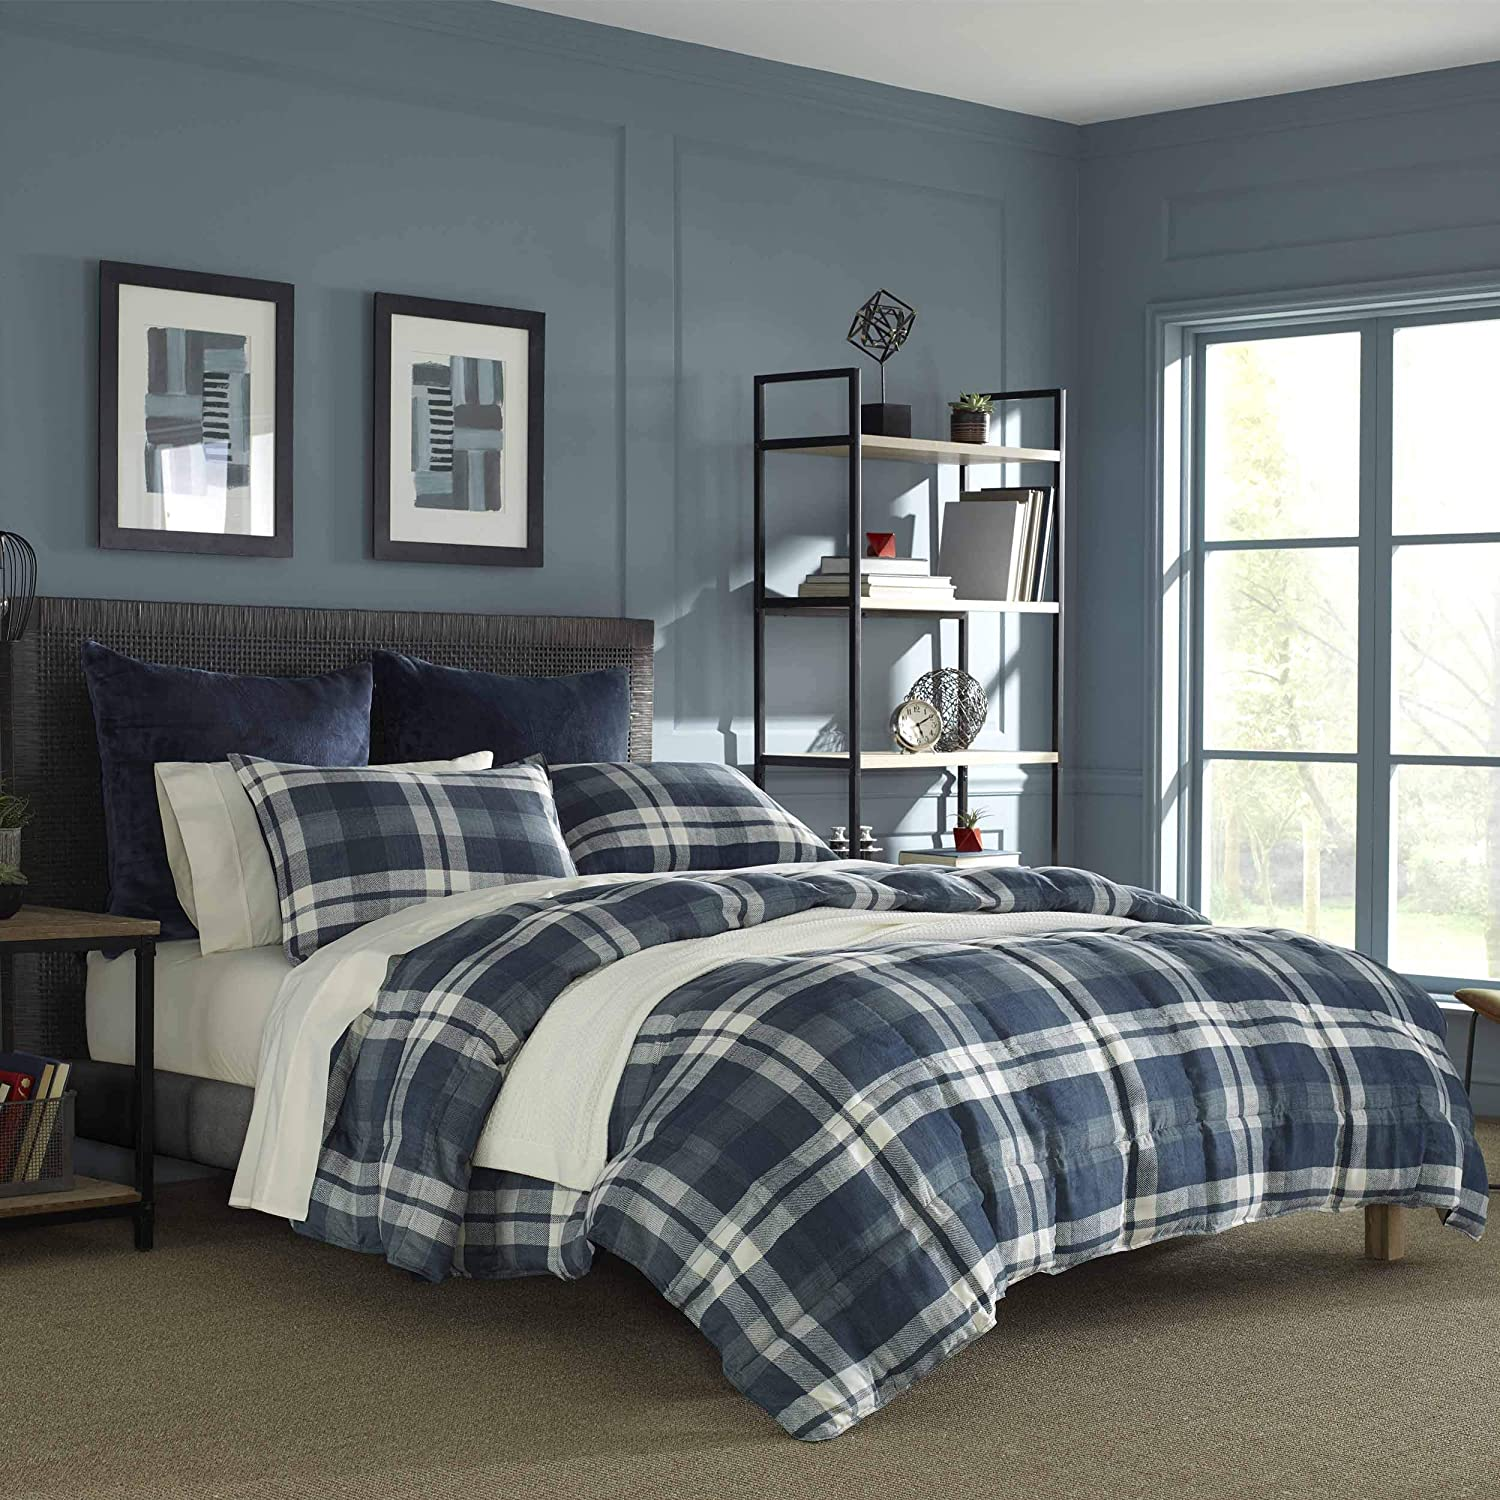 Detroit Mall Nautica Home Crossview Collection Cozy Soft Ultra Don't miss the campaign Microsue